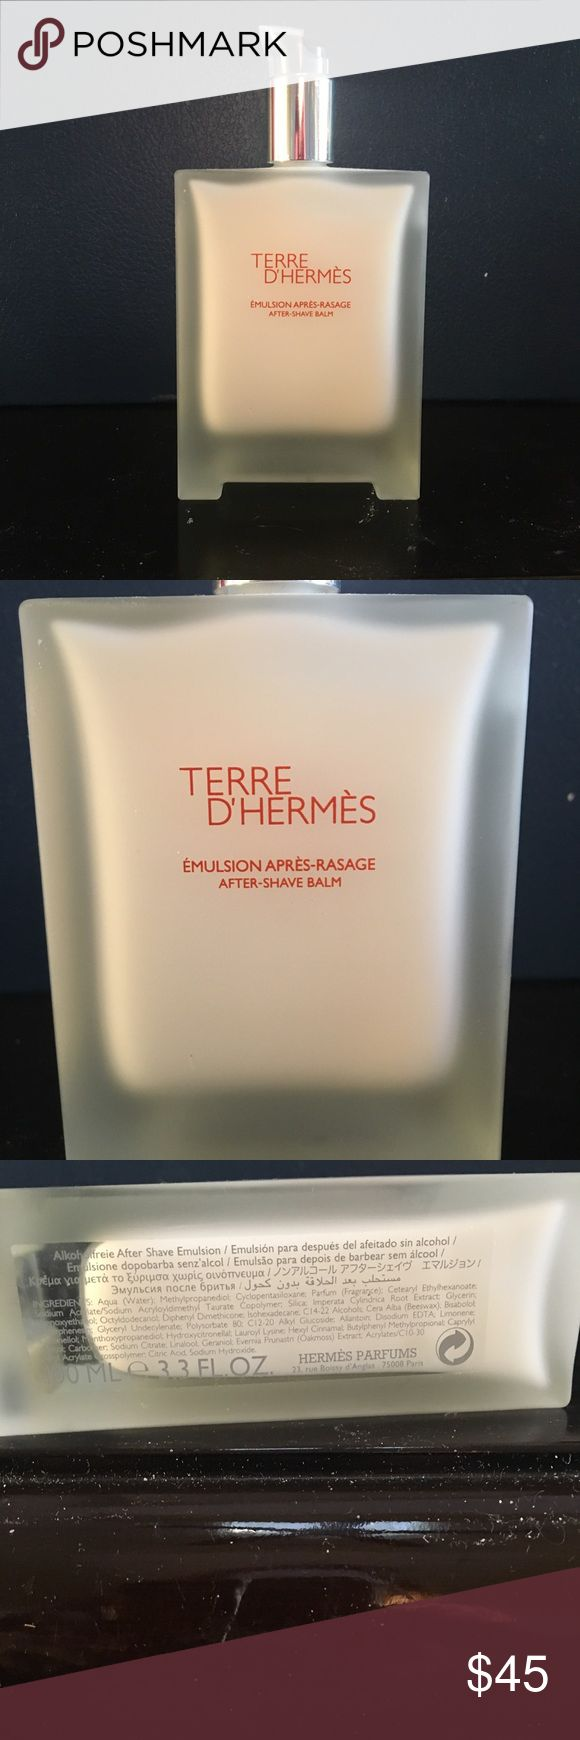 HERMES, Terre D'Hermes After Shave Balm. 3.3 OZ Terre D'Hermes Aftershave Balm, 3.3 OZ. This emulsion provides hydration and comfort to the skin. It's fluid and soft formula is easily absorbed and soothes razor burn. Non greasy texture.    NEW w/o tags. Unopened Hermes Other